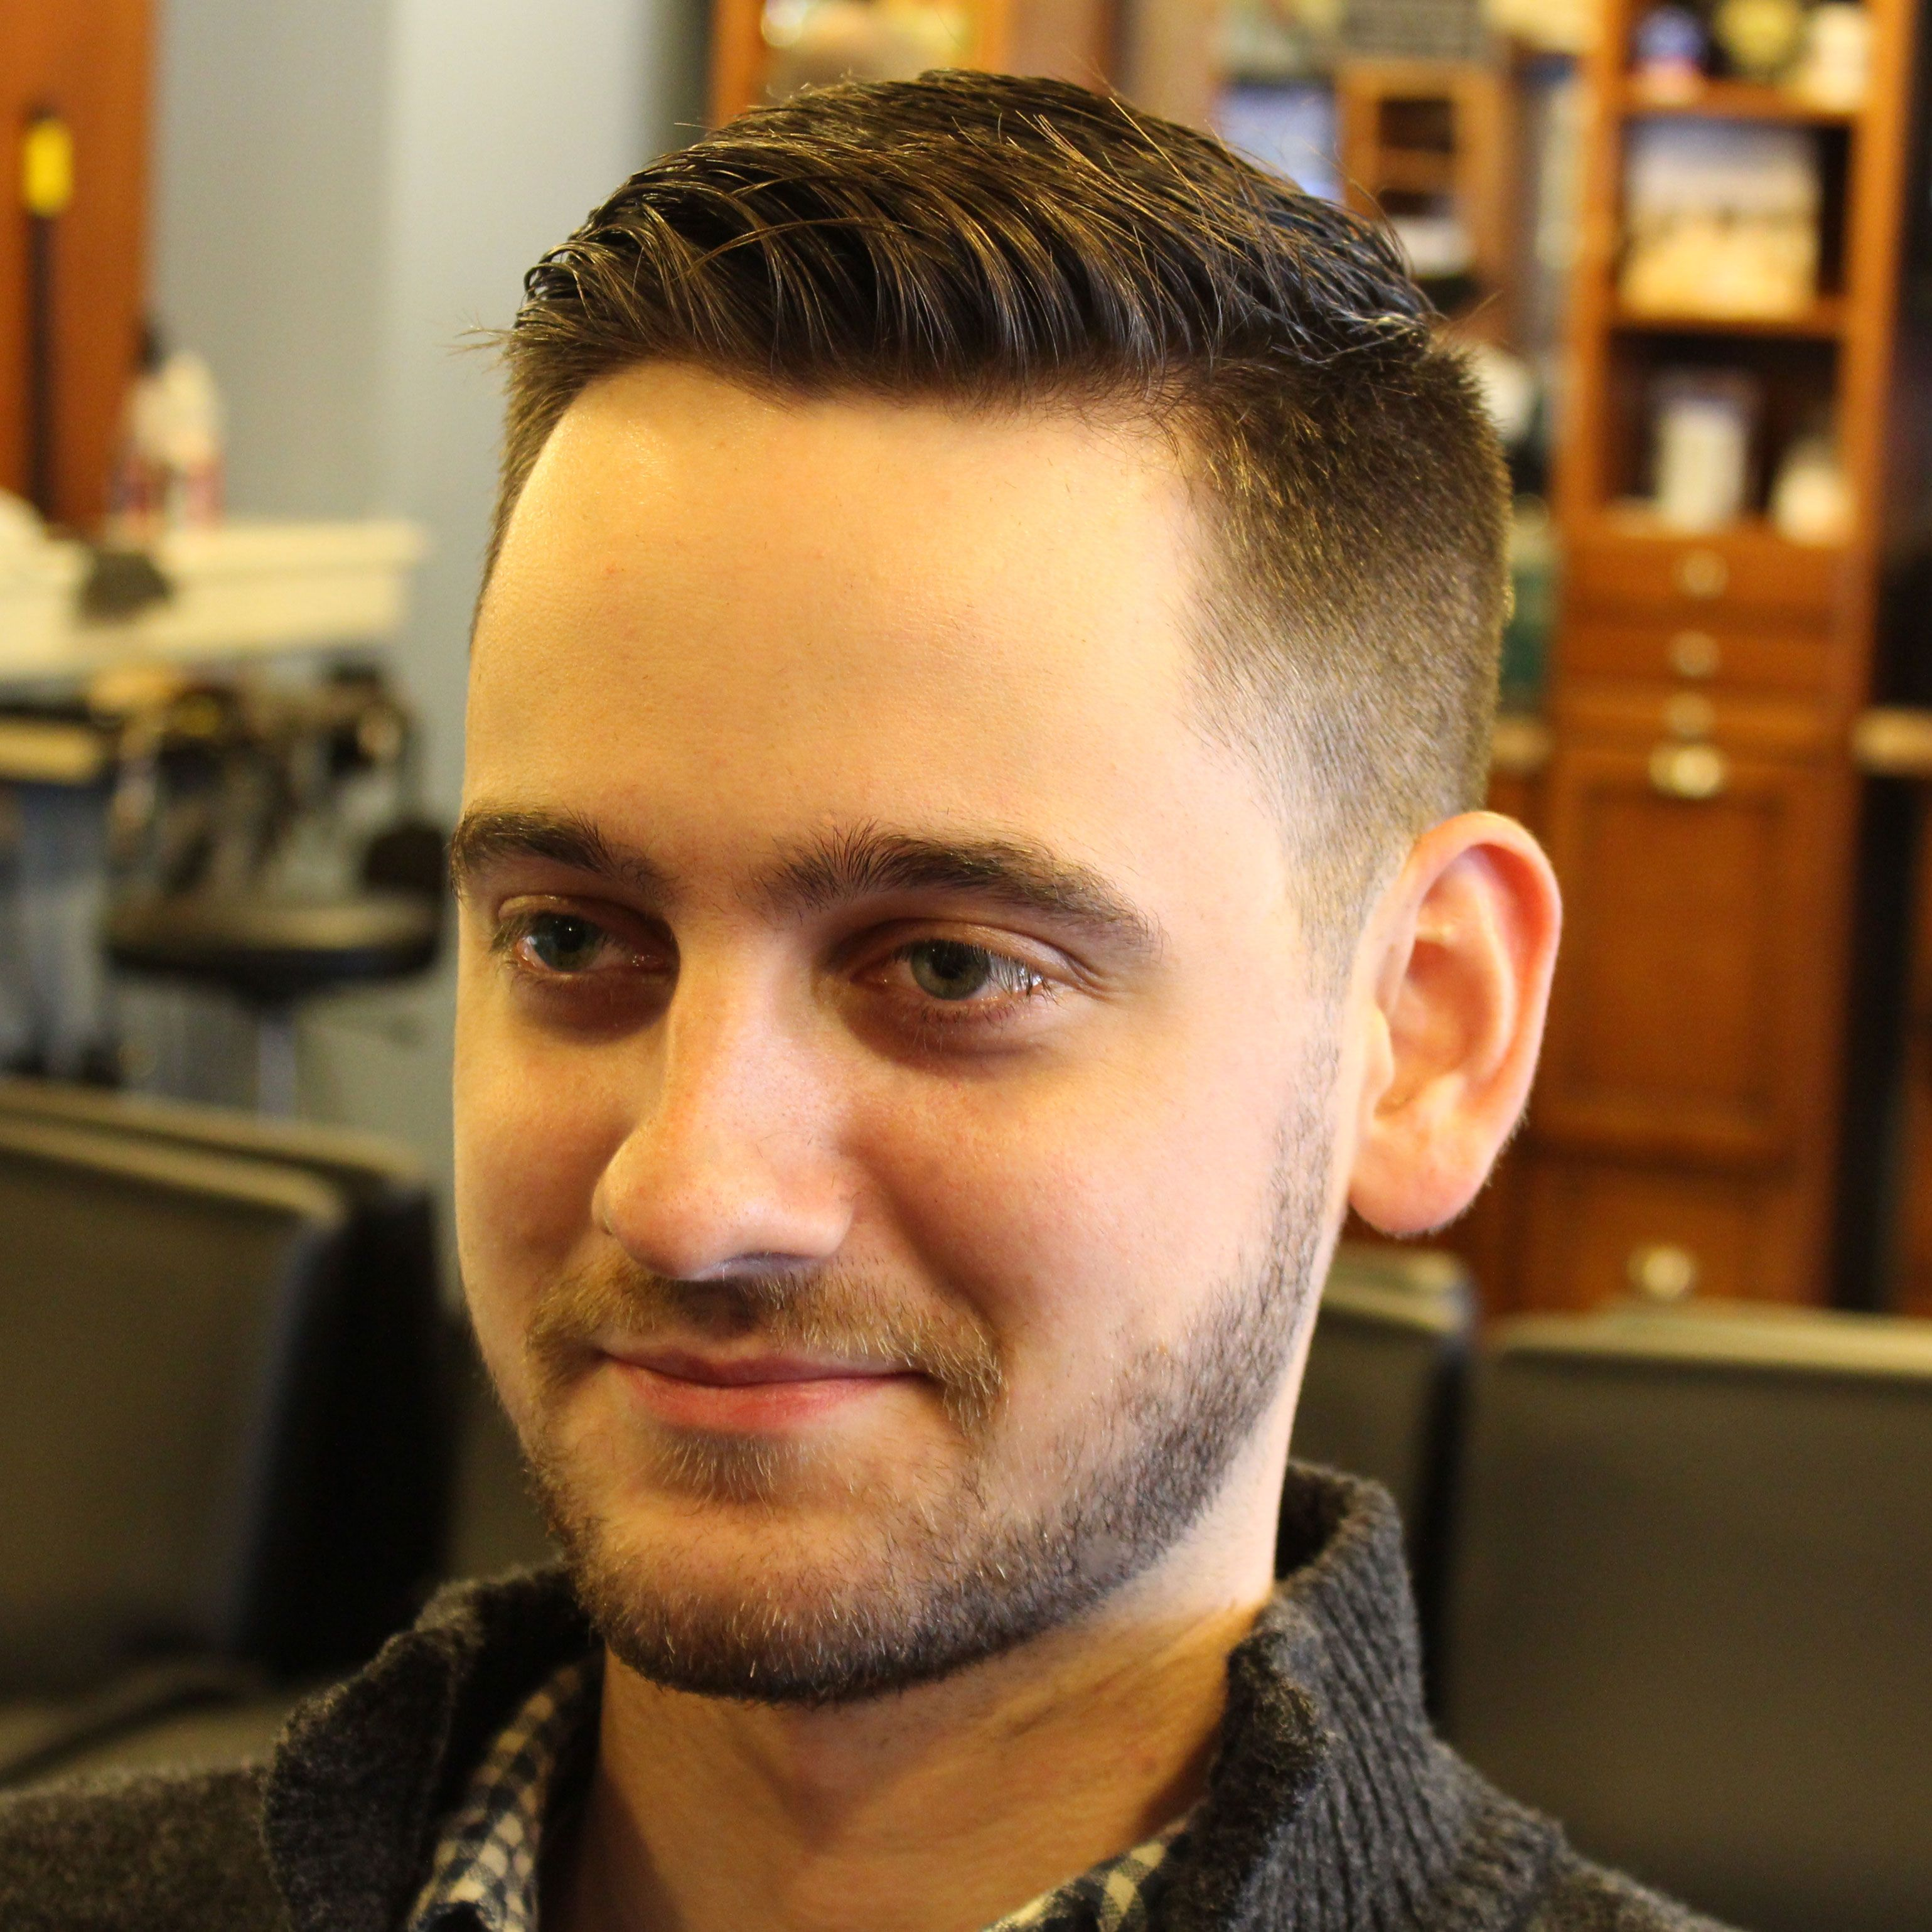 Classic Taper With Beard Photo David Alexander On Haircuts For